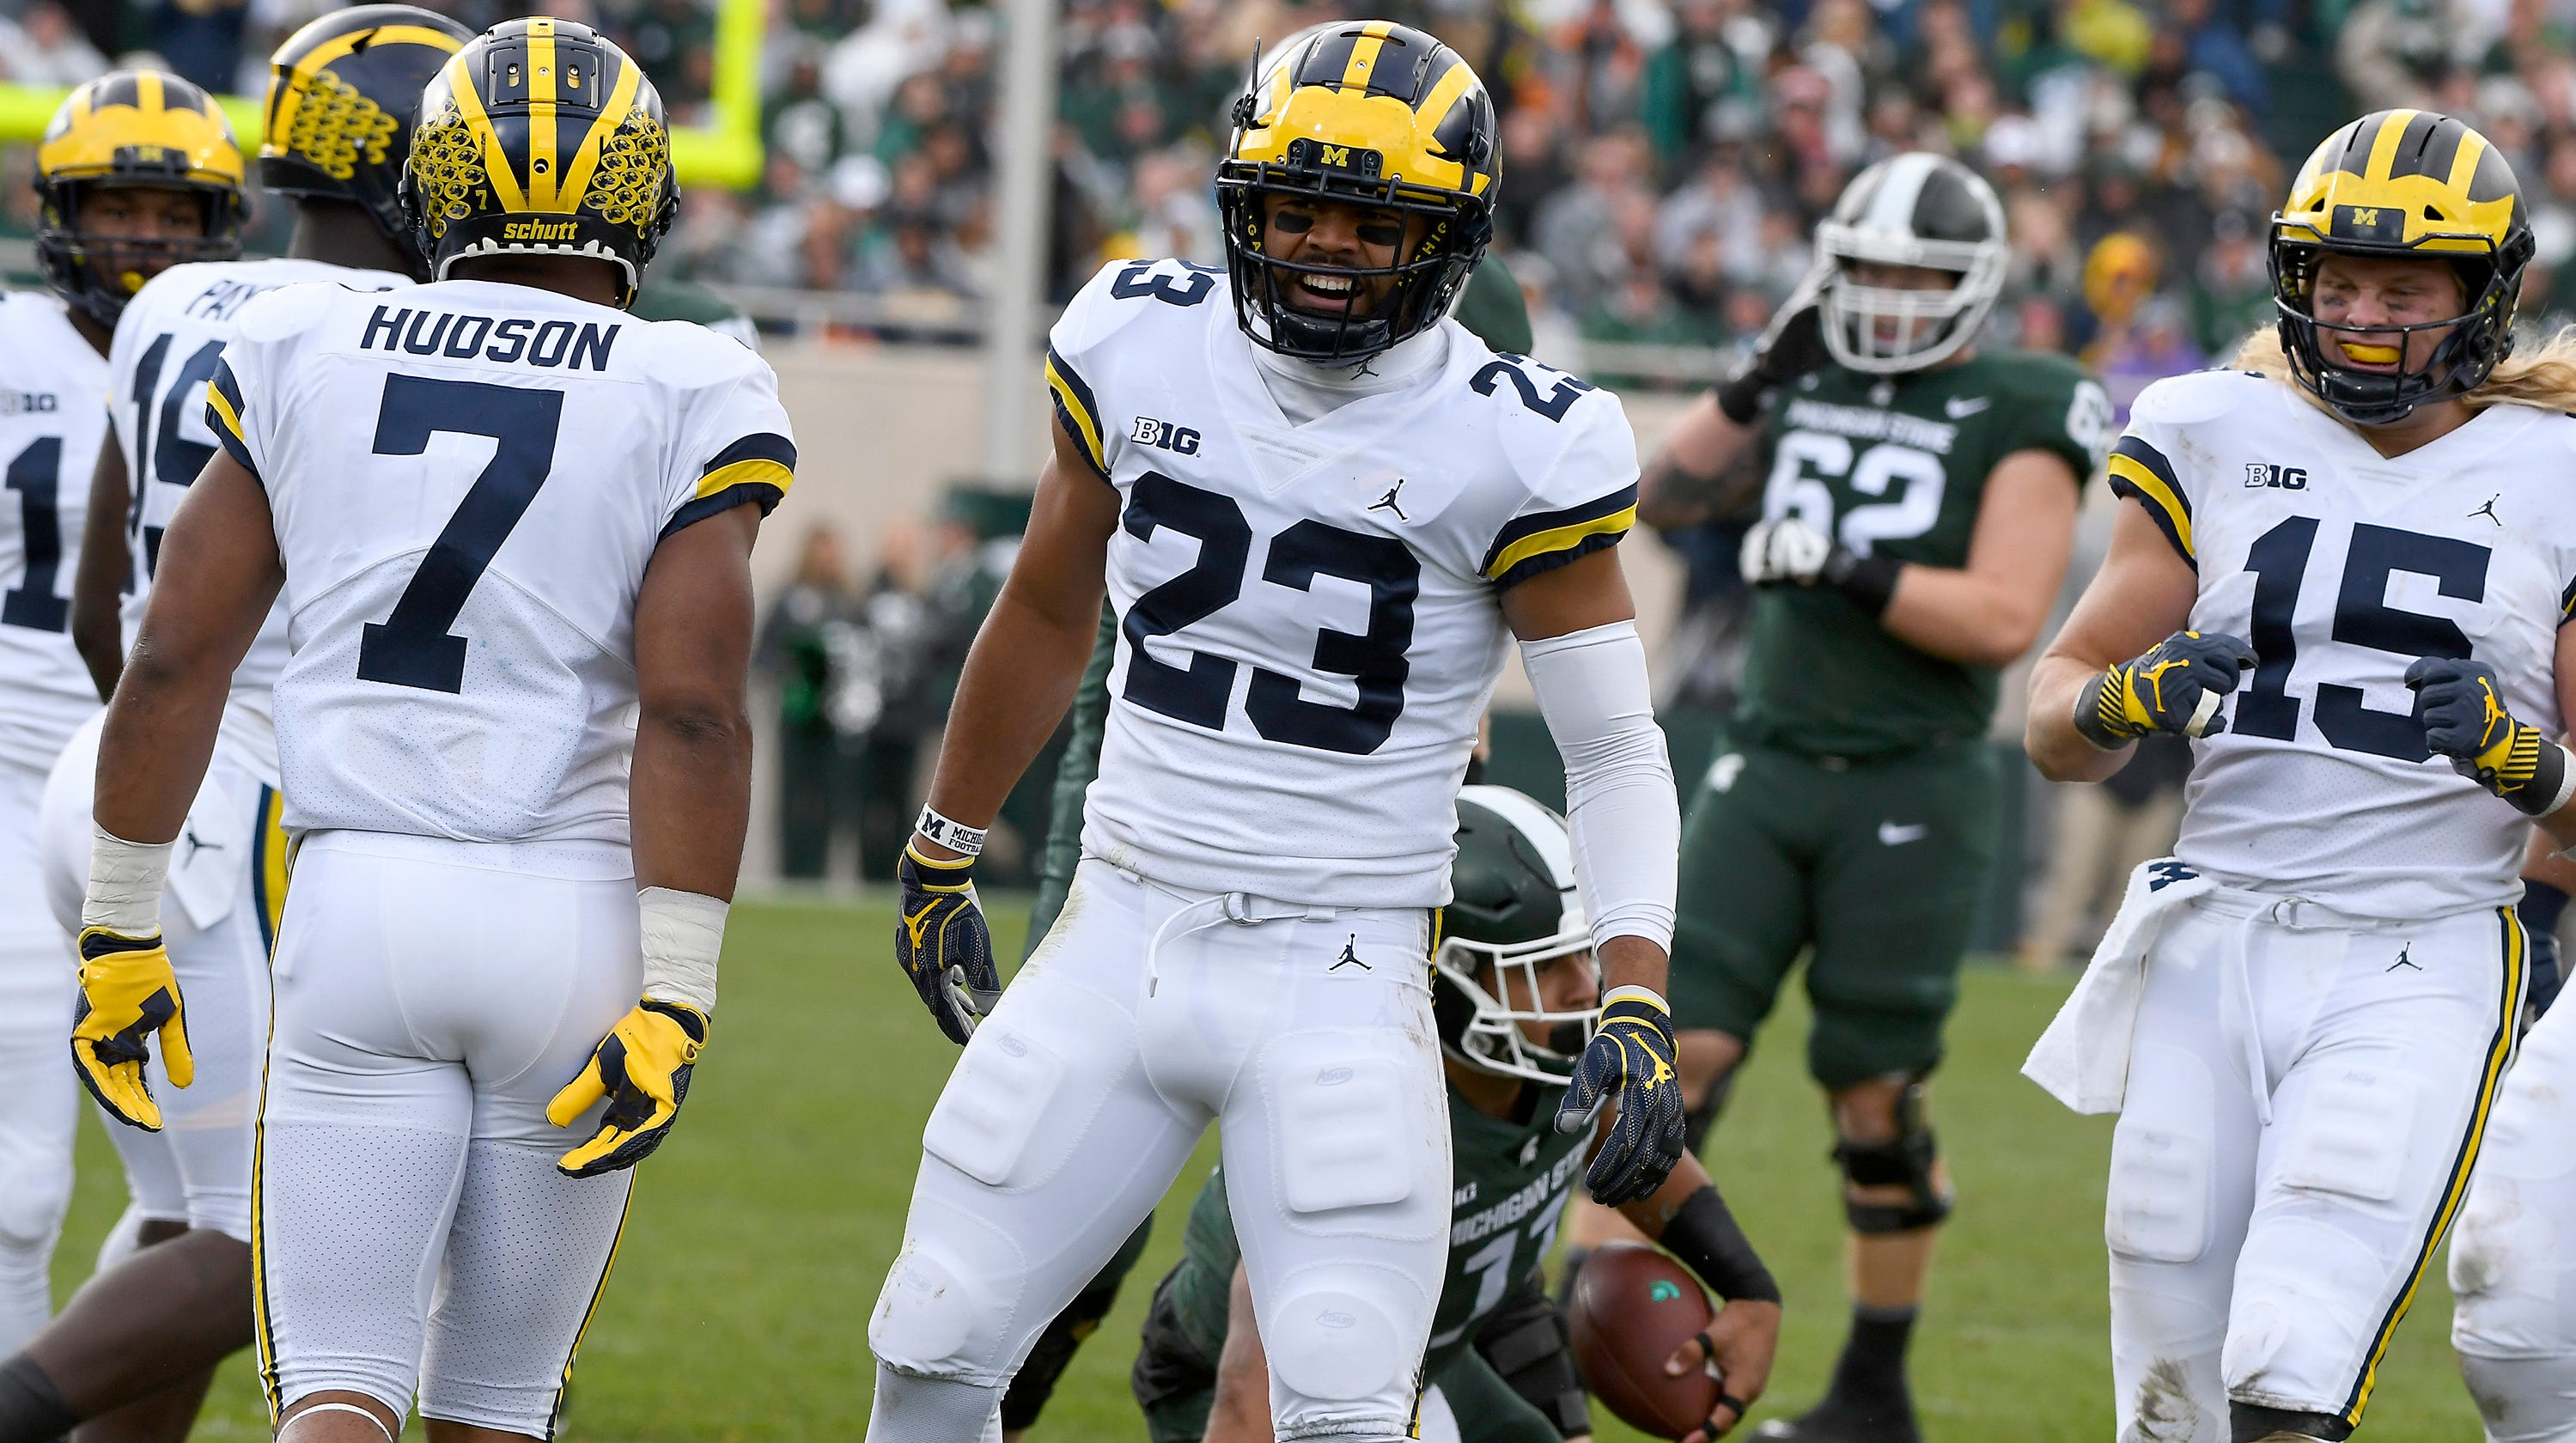 Michigan's Tyree Kimmel celebrates  a  defensive stop against the Spartans.